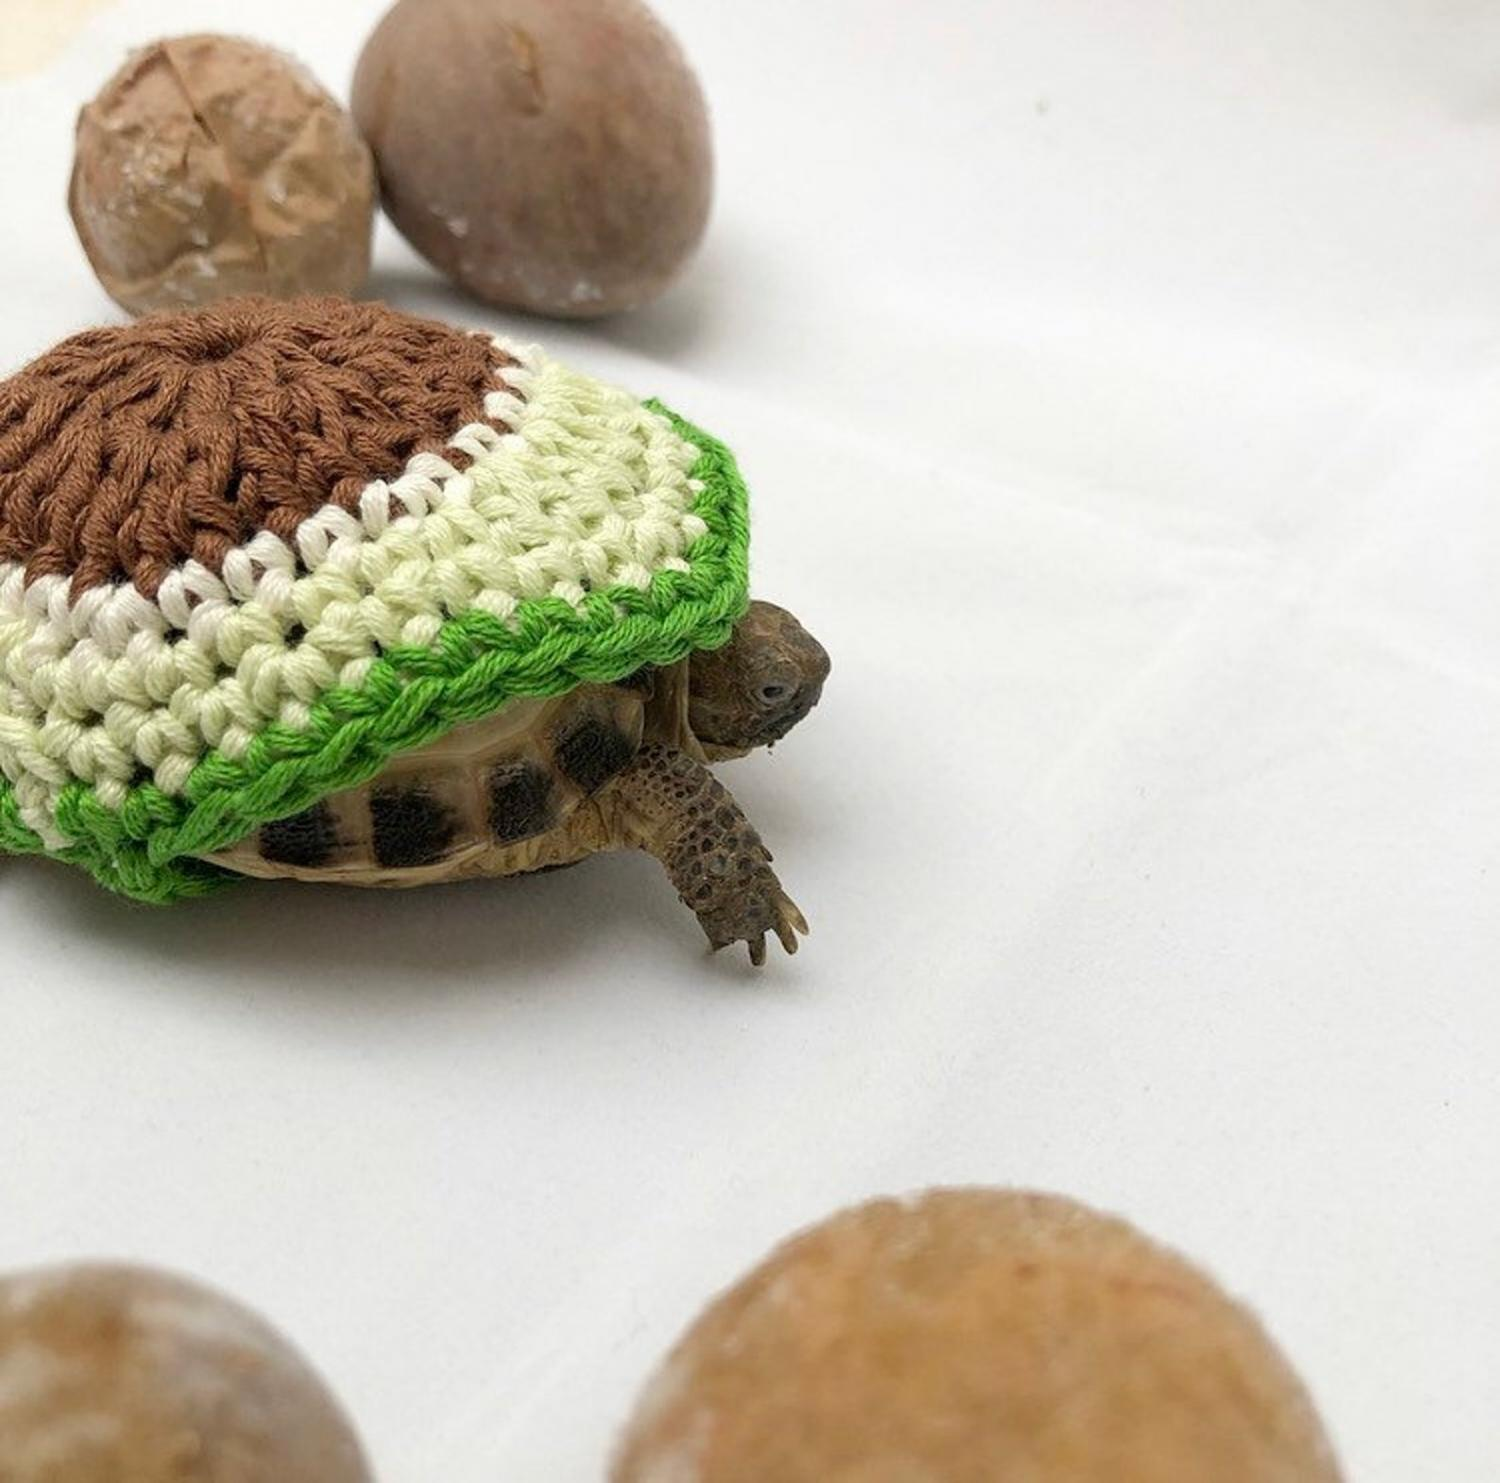 Crochet Turtle Sweater - Avocado tortoise cozy